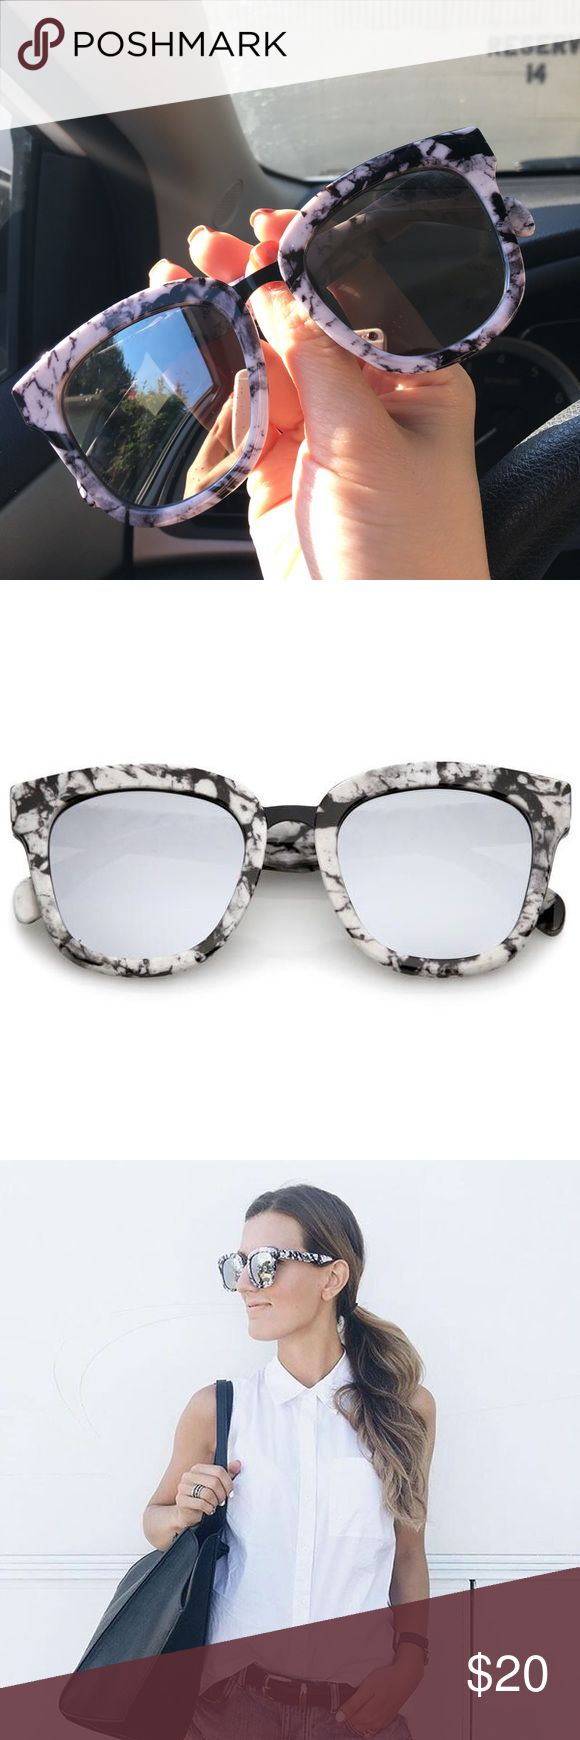 100% UV sunglasses This mirror lens 100% UV sunglasses are so cute and fun and trendy!!! It's a must-have ❤️ Accessories Sunglasses